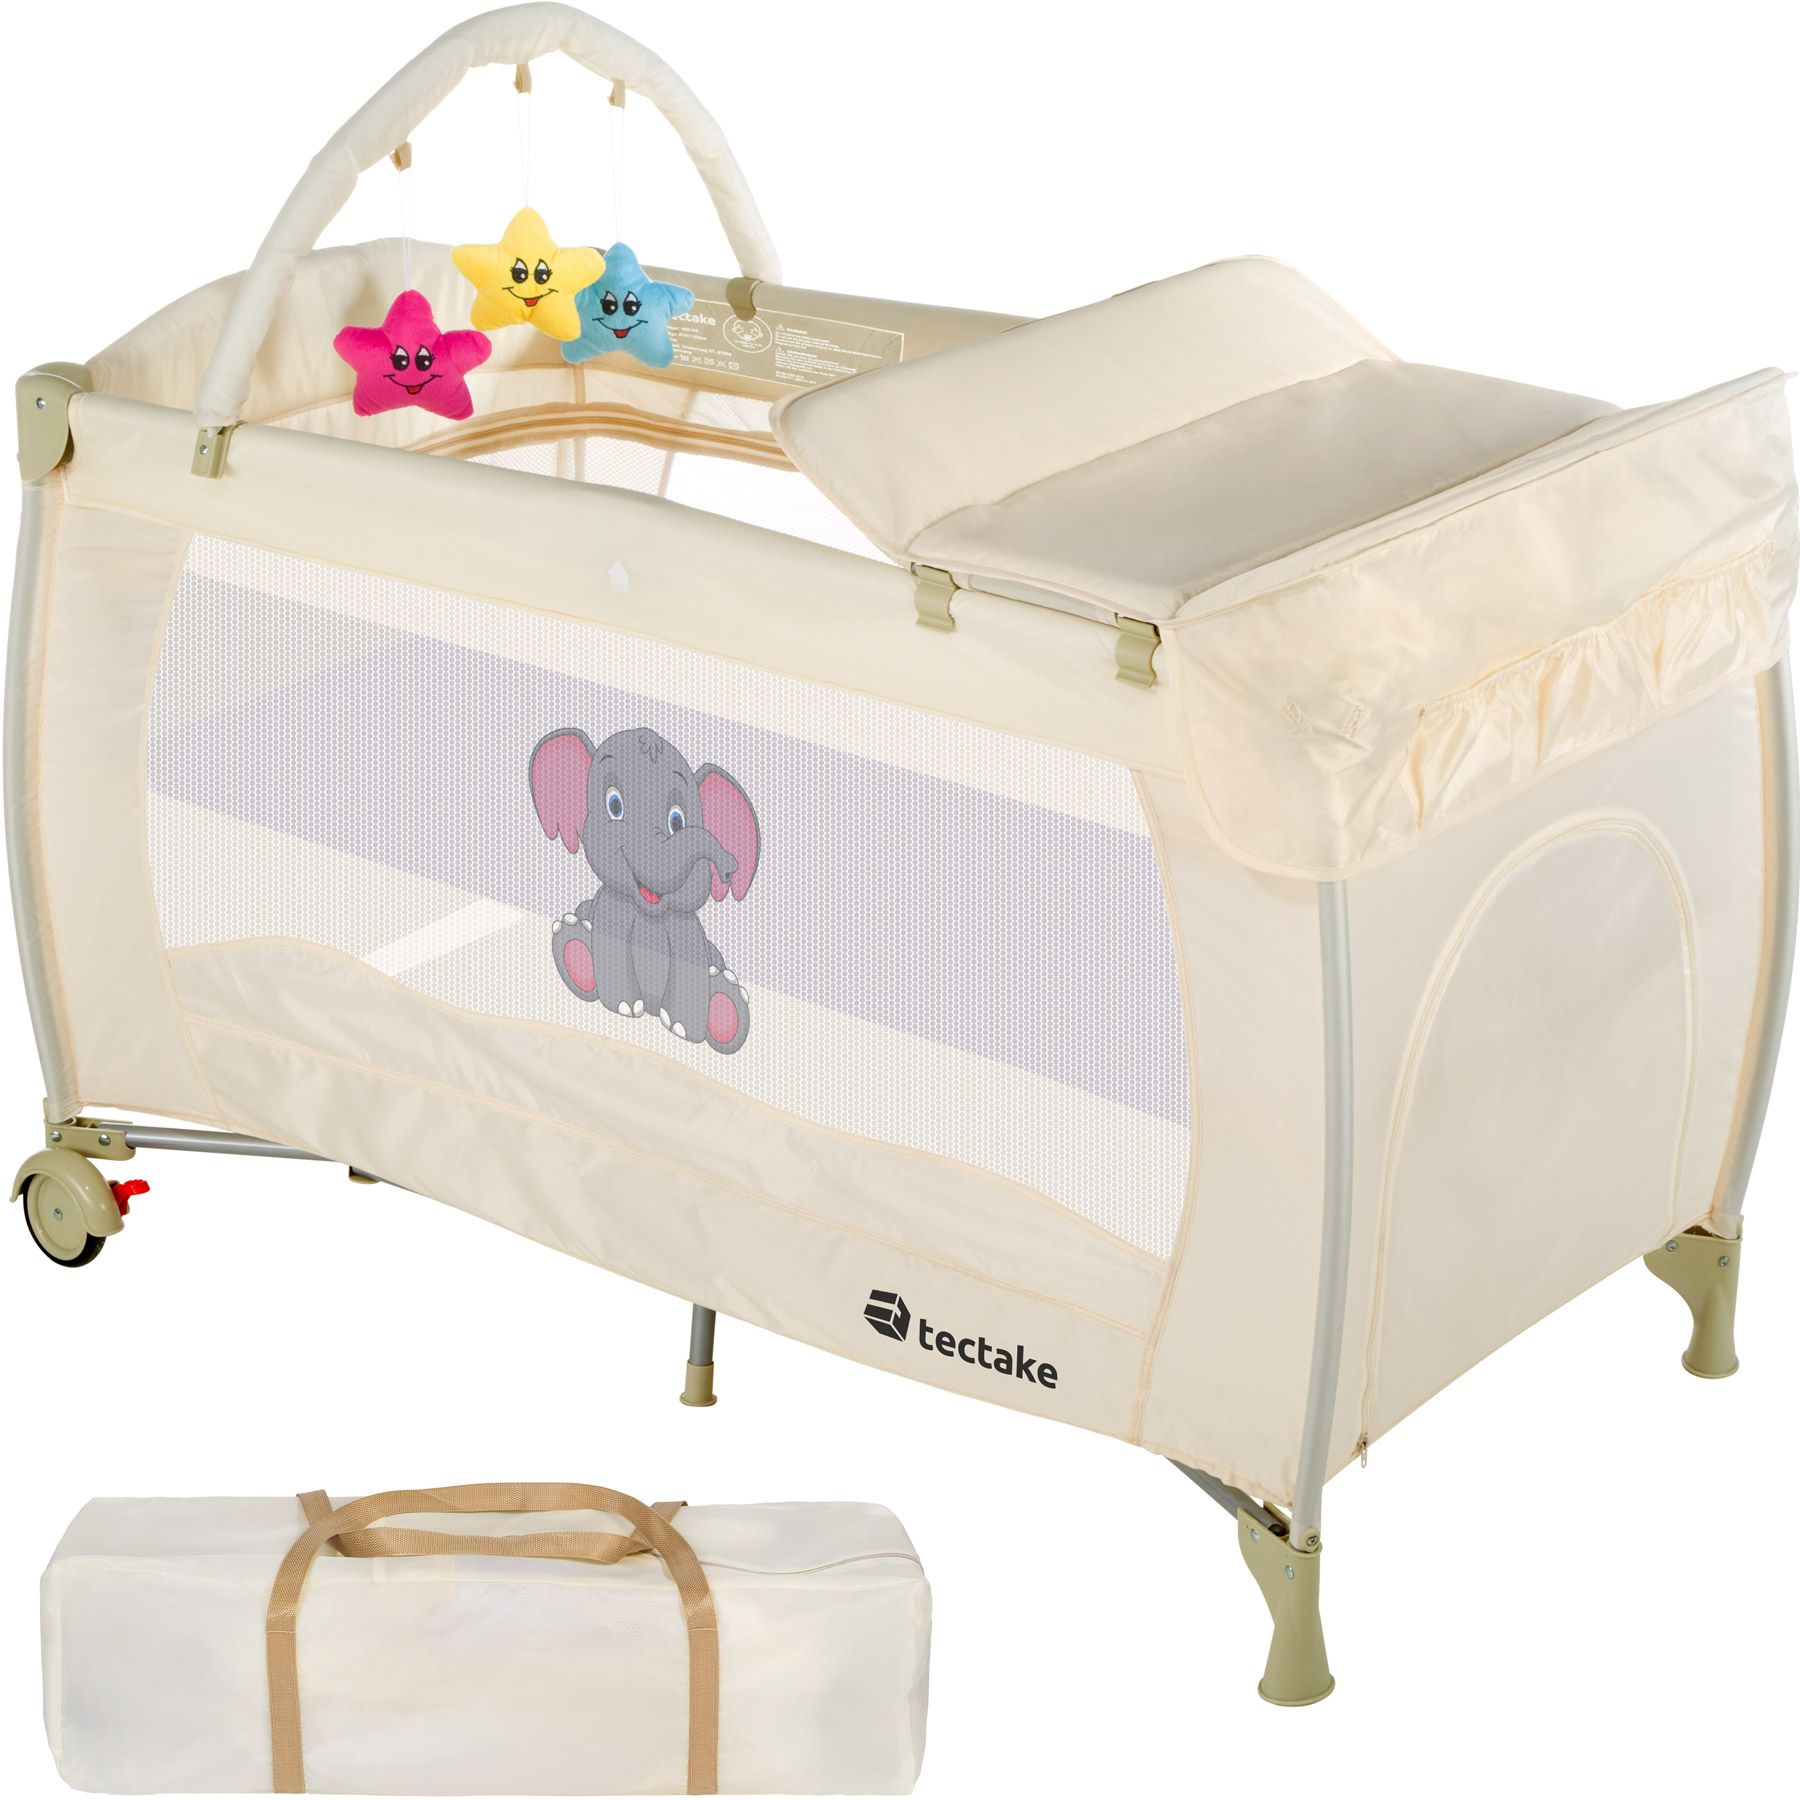 babybett kinder baby reisebett kinderreisebett kinderbett laufstall neu beige ebay. Black Bedroom Furniture Sets. Home Design Ideas